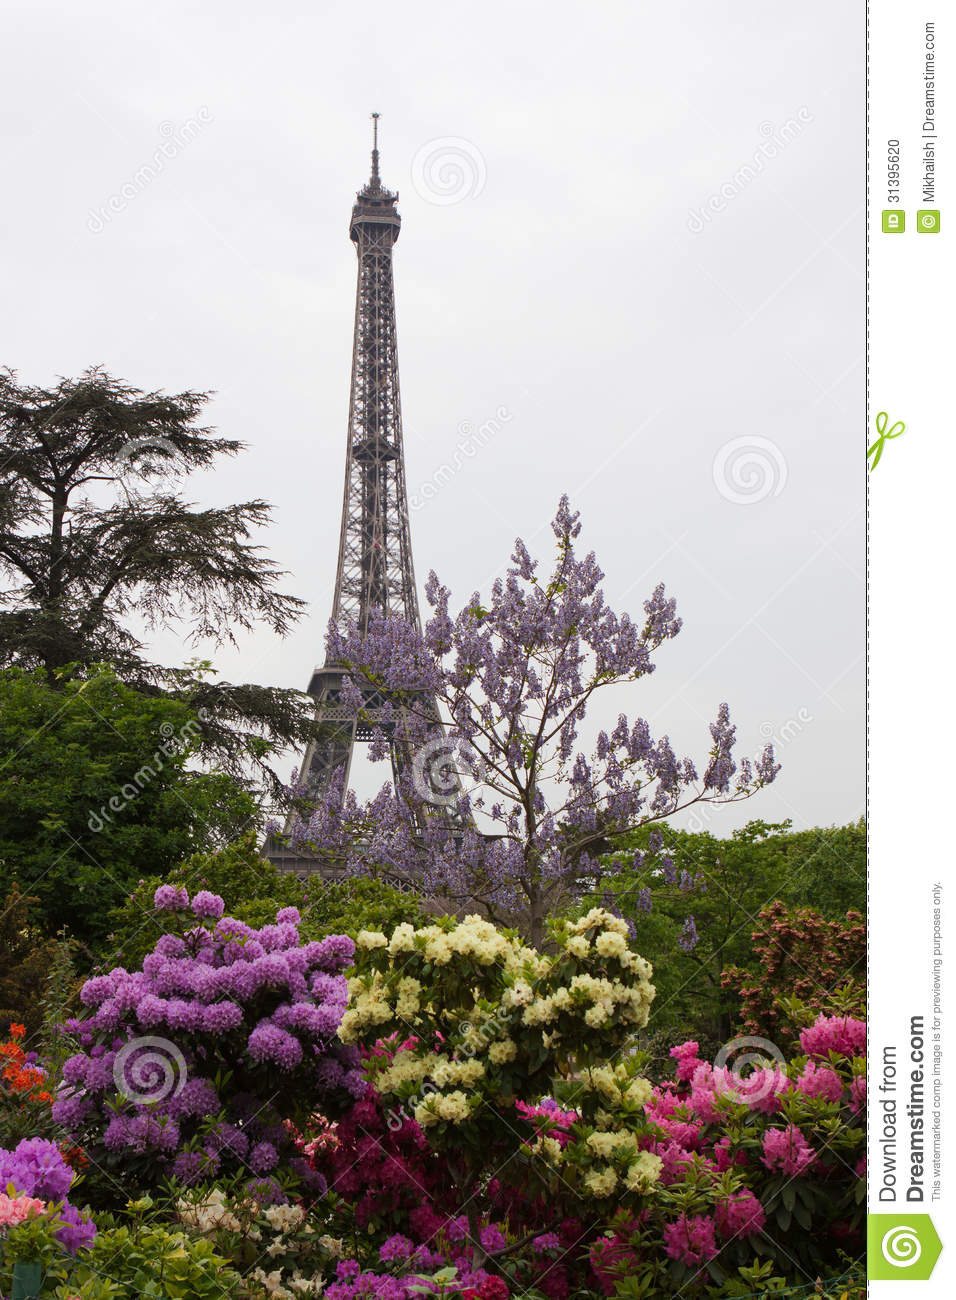 tour eiffel avec des branches de fleur photo stock image 31395620. Black Bedroom Furniture Sets. Home Design Ideas